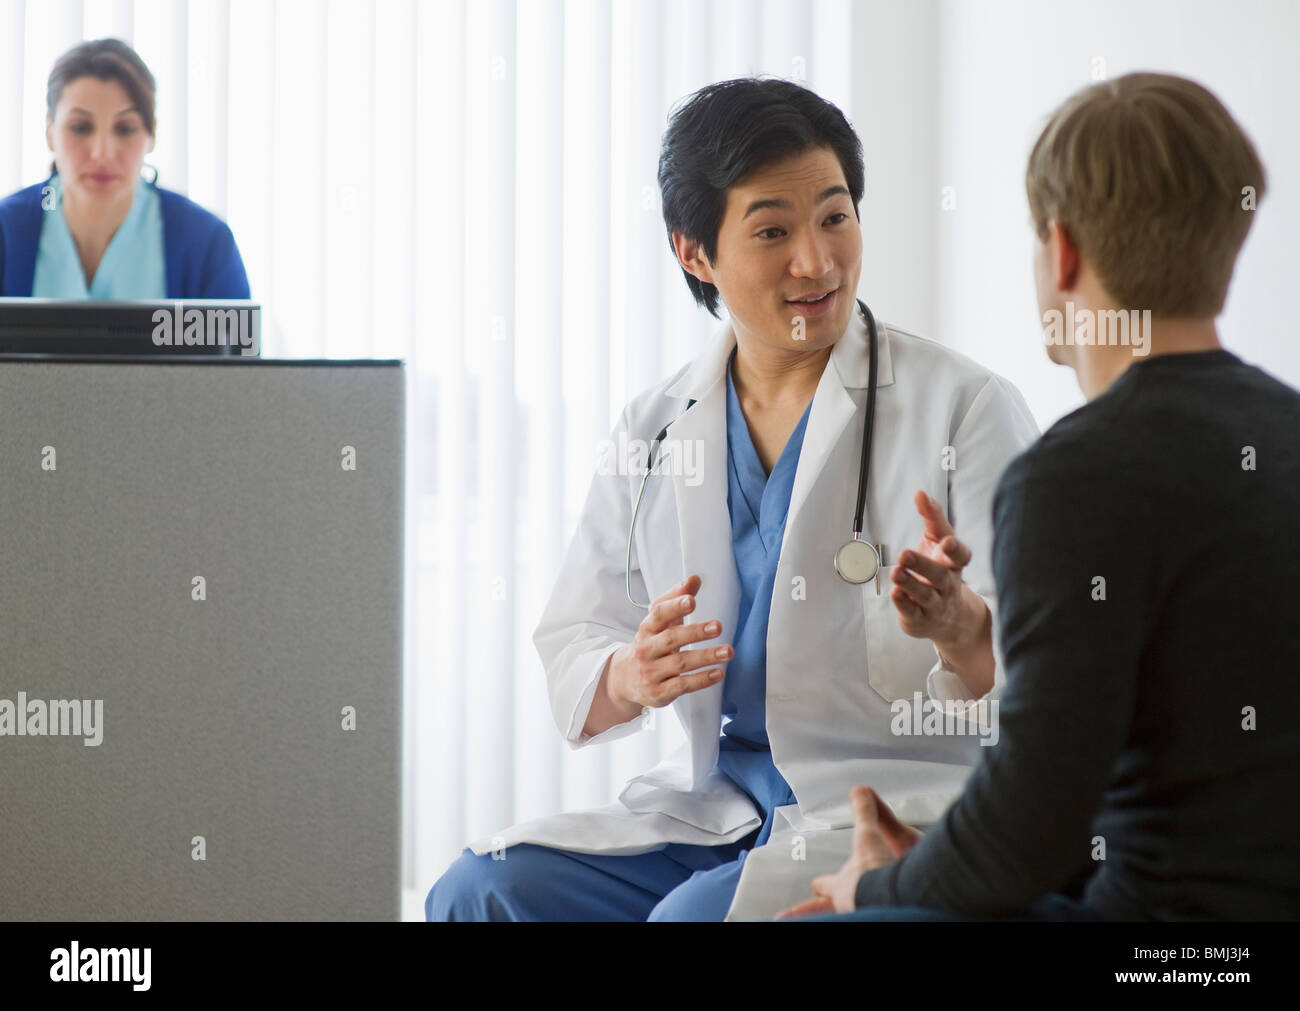 Doctor talking to patient in waiting room - Stock Image